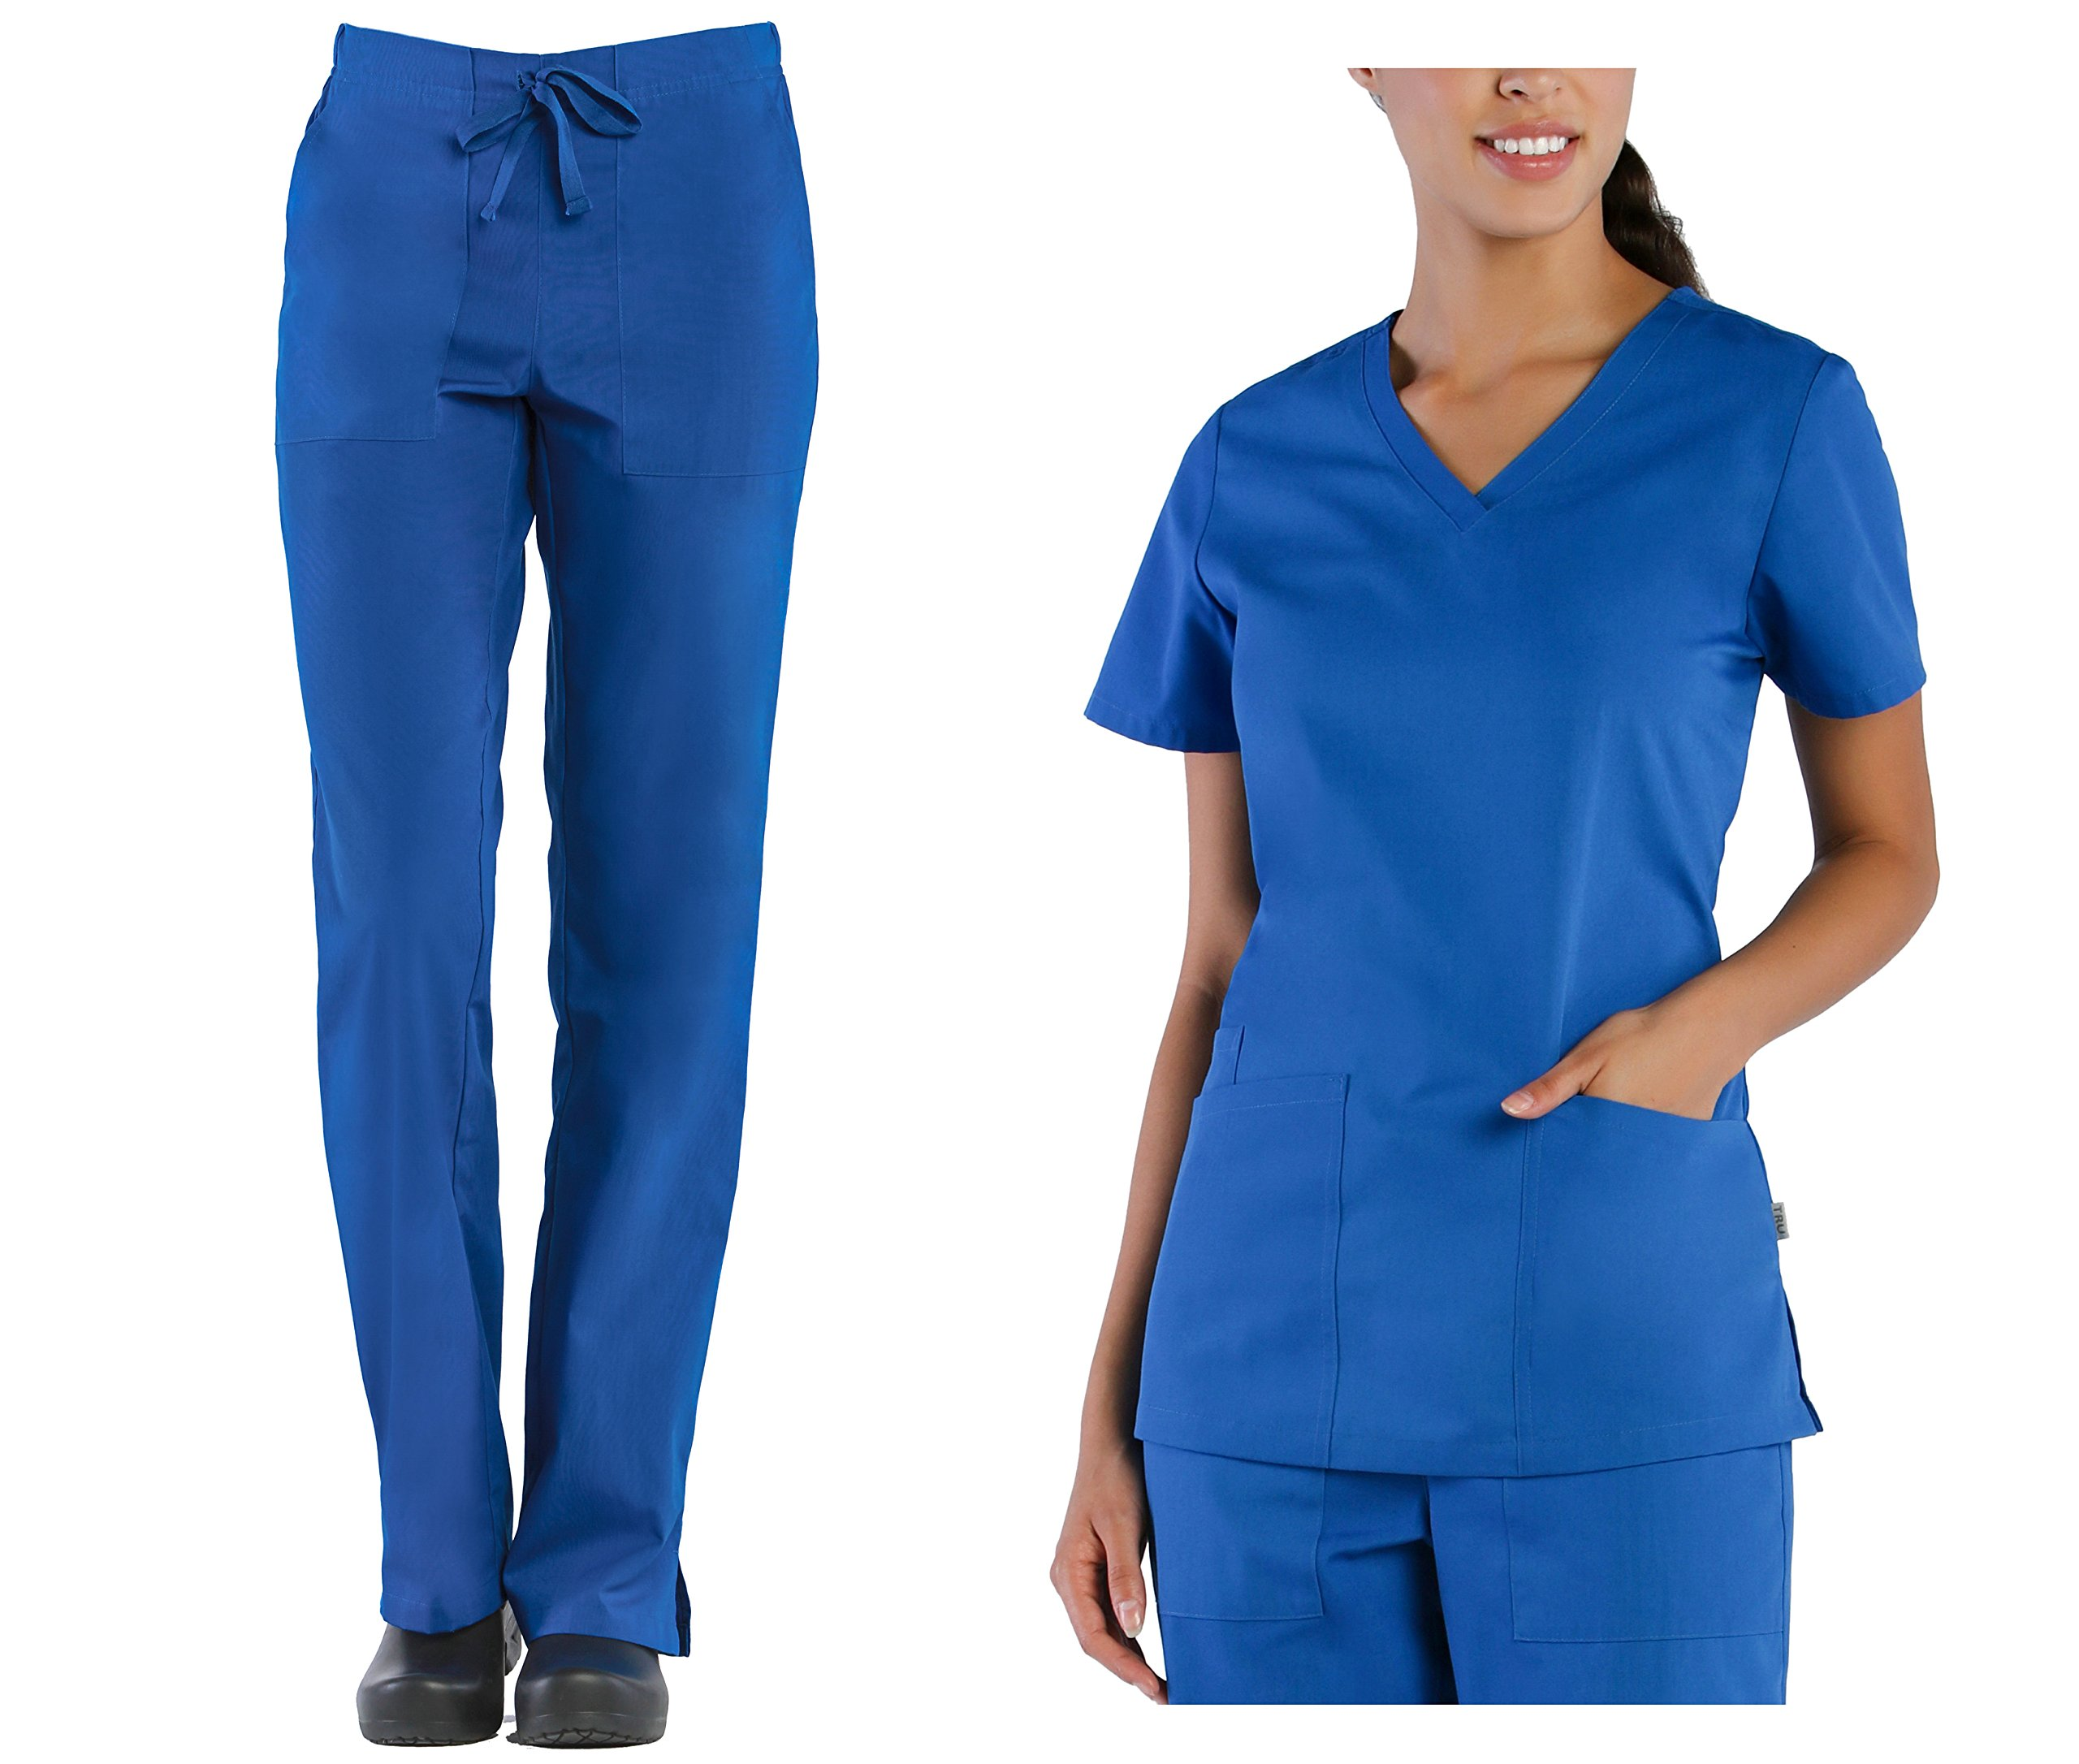 Tru Scrubs Ladies V-Neck Top & Drawstring Half Elastic Pant Scrub Set (X-Small Petite, Royal Blue)